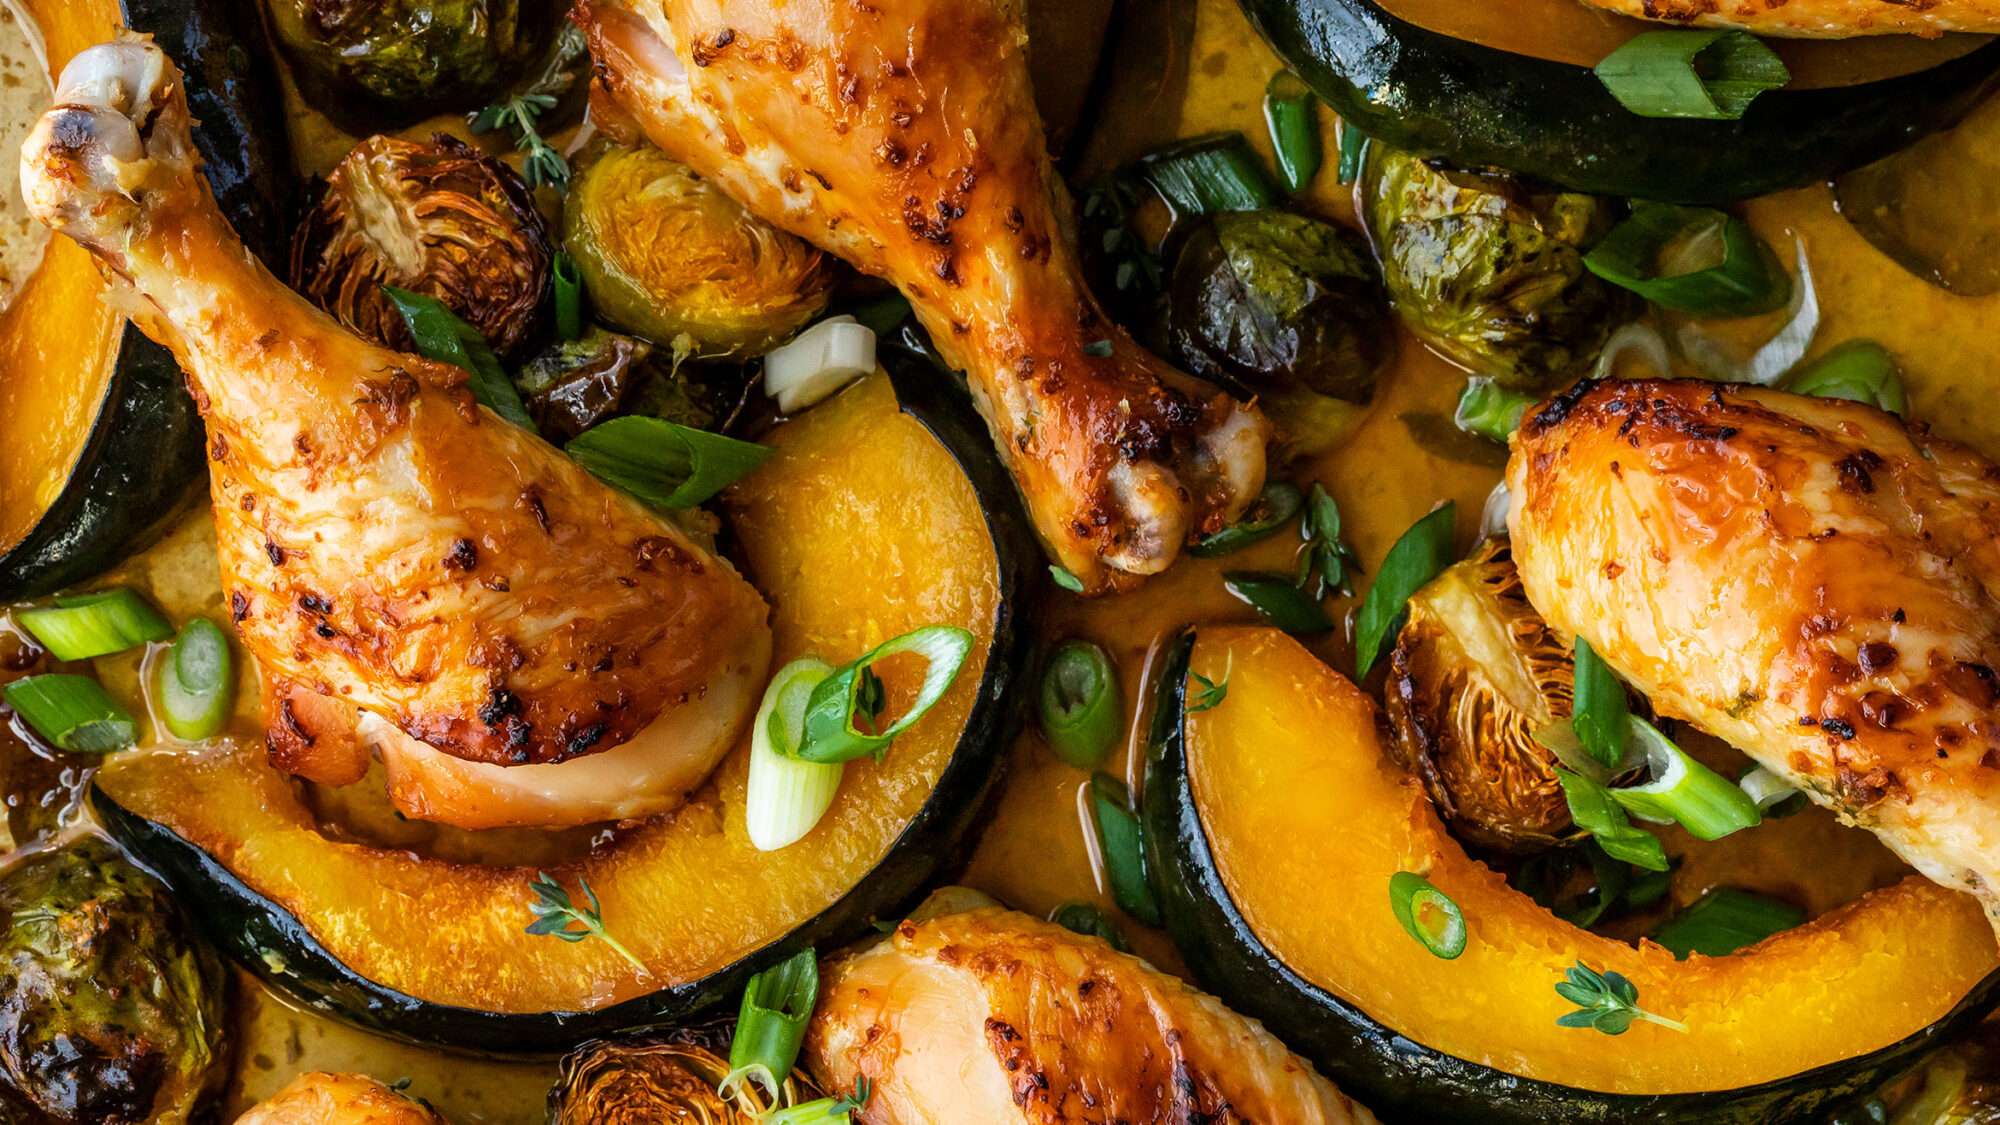 Article-Cathy-Erway-Sheet-Pan-Chicken-Drumsticks-Recipe